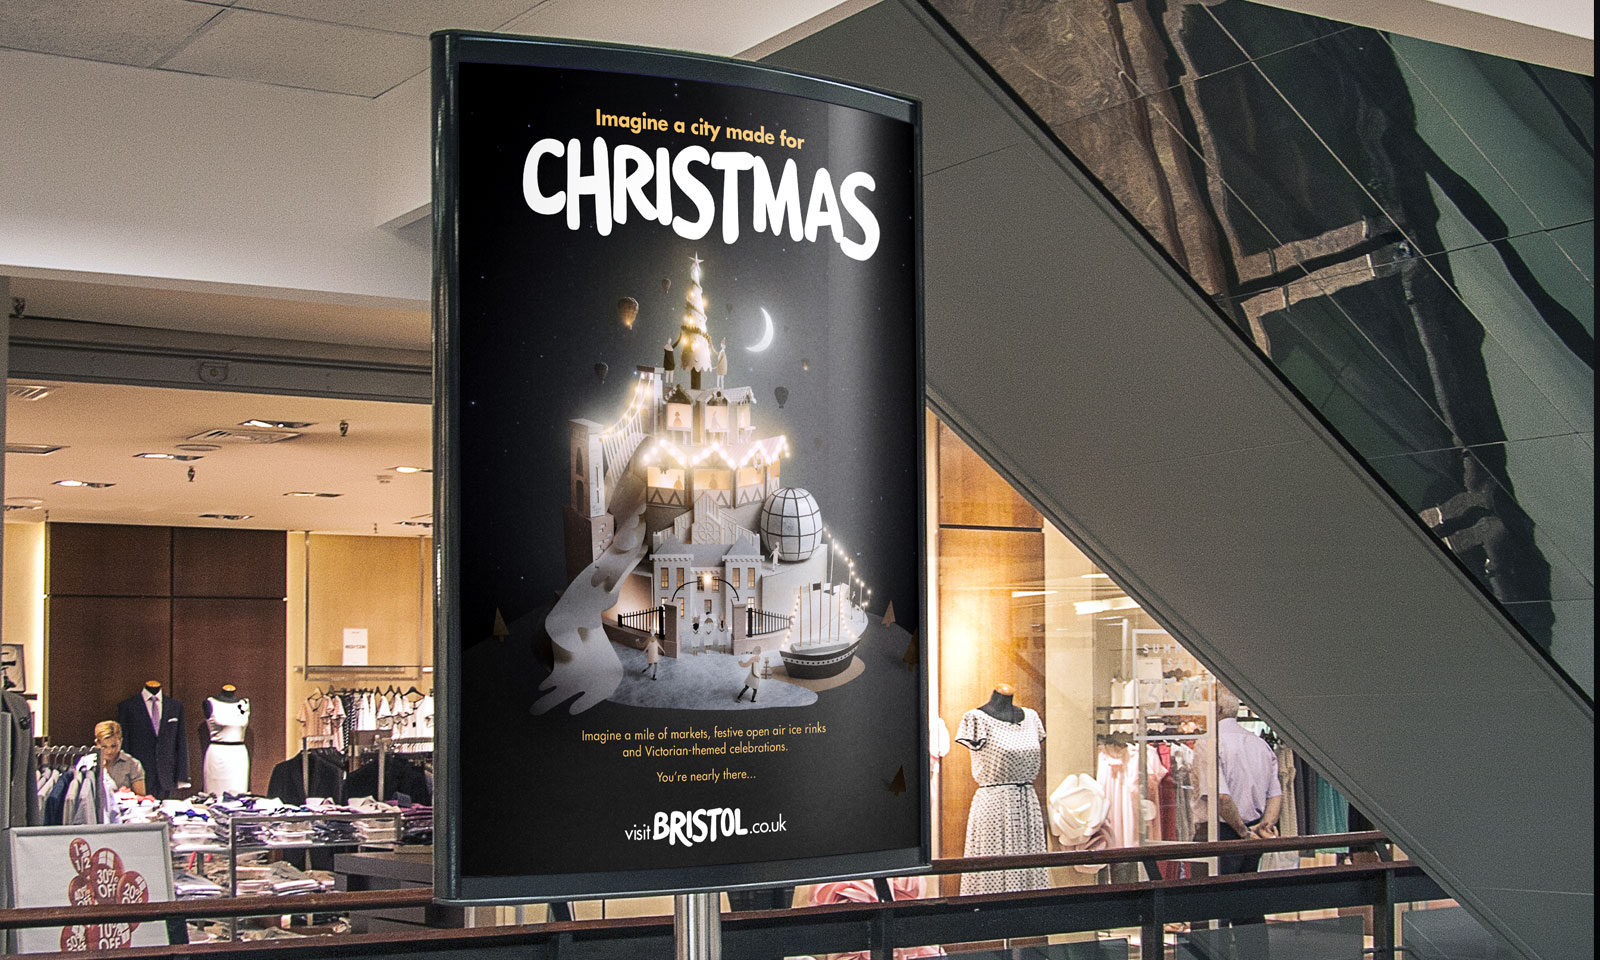 Sam Pierpoint Creates Magical Campaign Promoting Christmas in Bristol Crafted in Paper - Poster